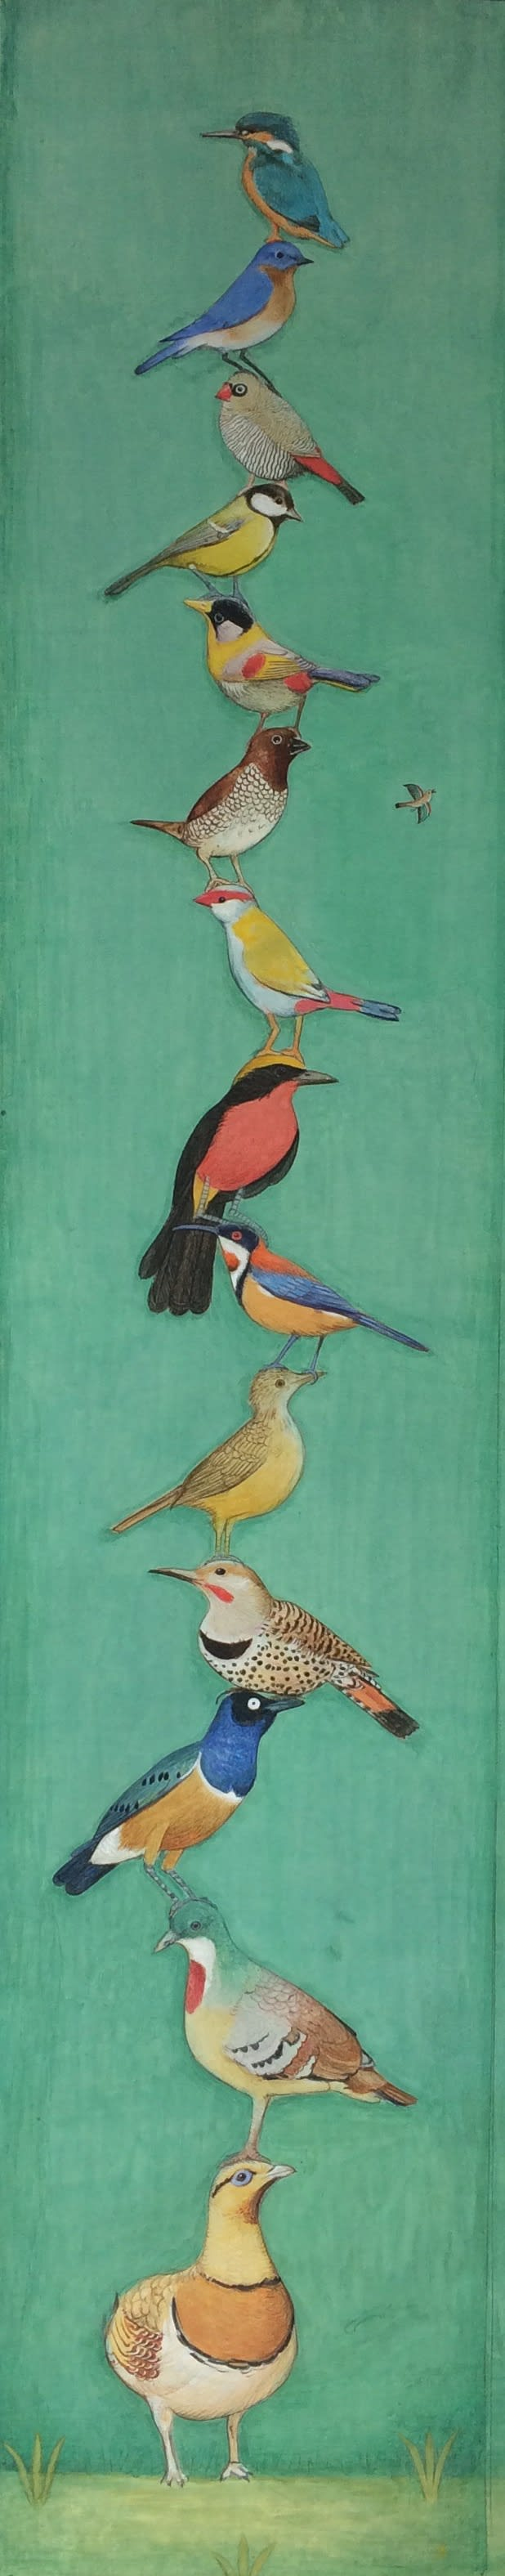 Jethro BUCK (b.1986) A Tower of Birds, Upwards Rising, 2017 Natural pigments and Gouache on Sanganer paper 32 7/8 x 6 ½ inches / 83.5cm x 16.5cm